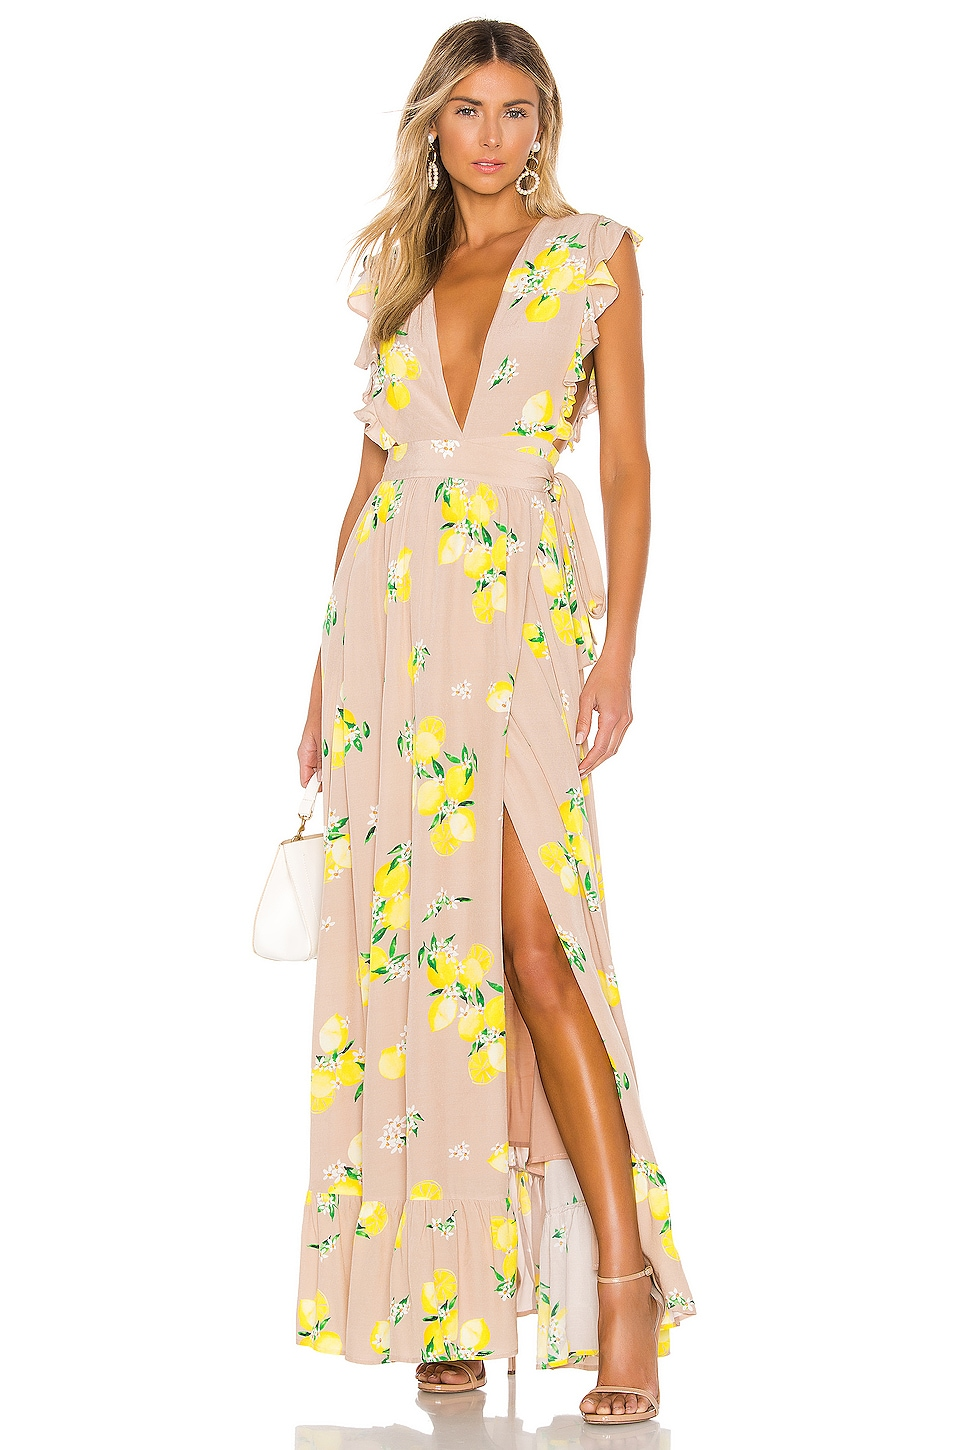 MAJORELLE Sweet Pea Dress in Tan Lemon